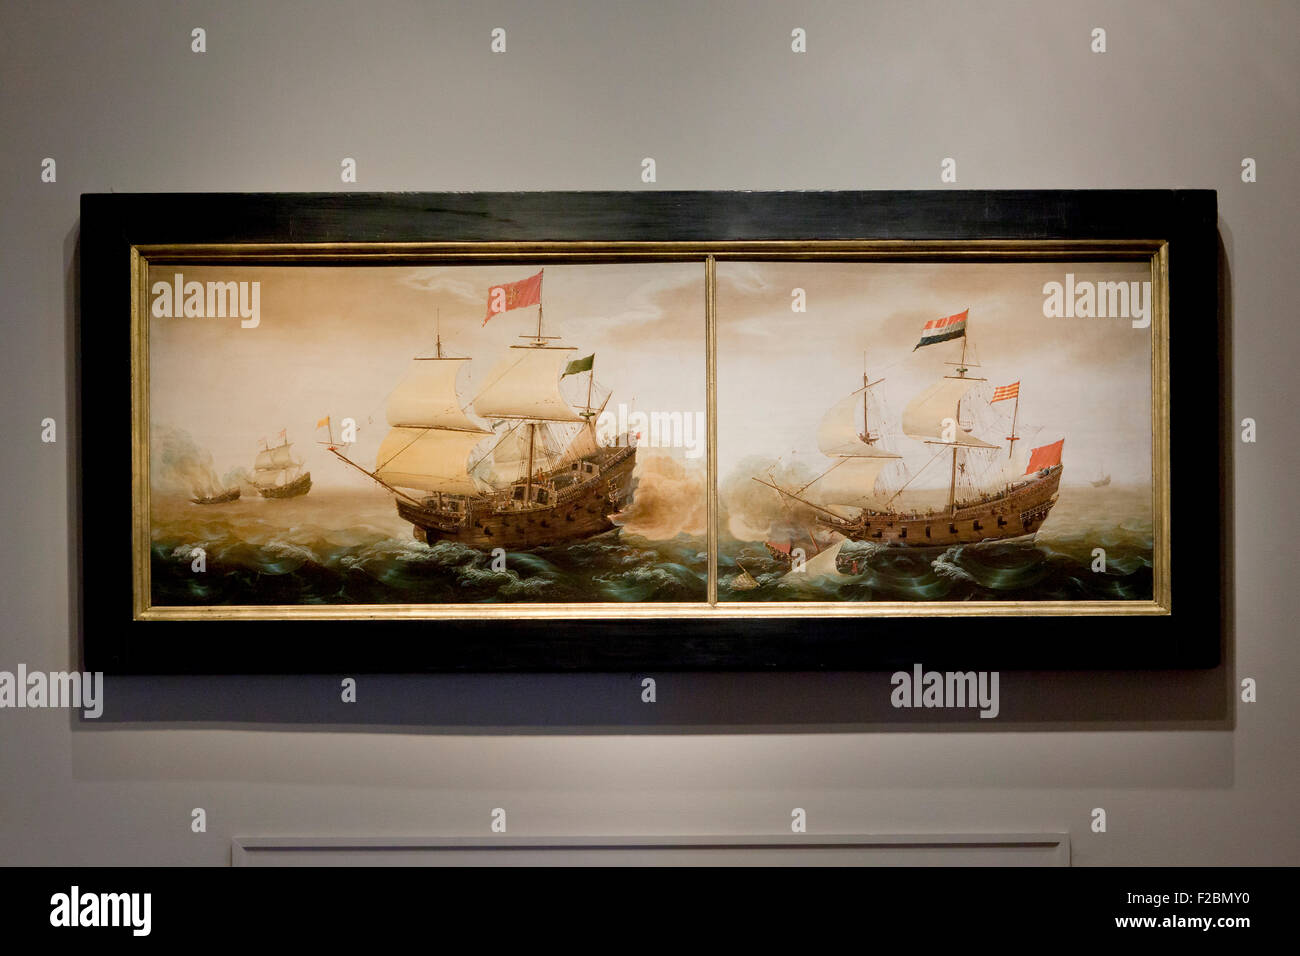 A Naval Encounter between Dutch and Spanish Warships by Cornelis Verbeeck, circa 1618 - Stock Image